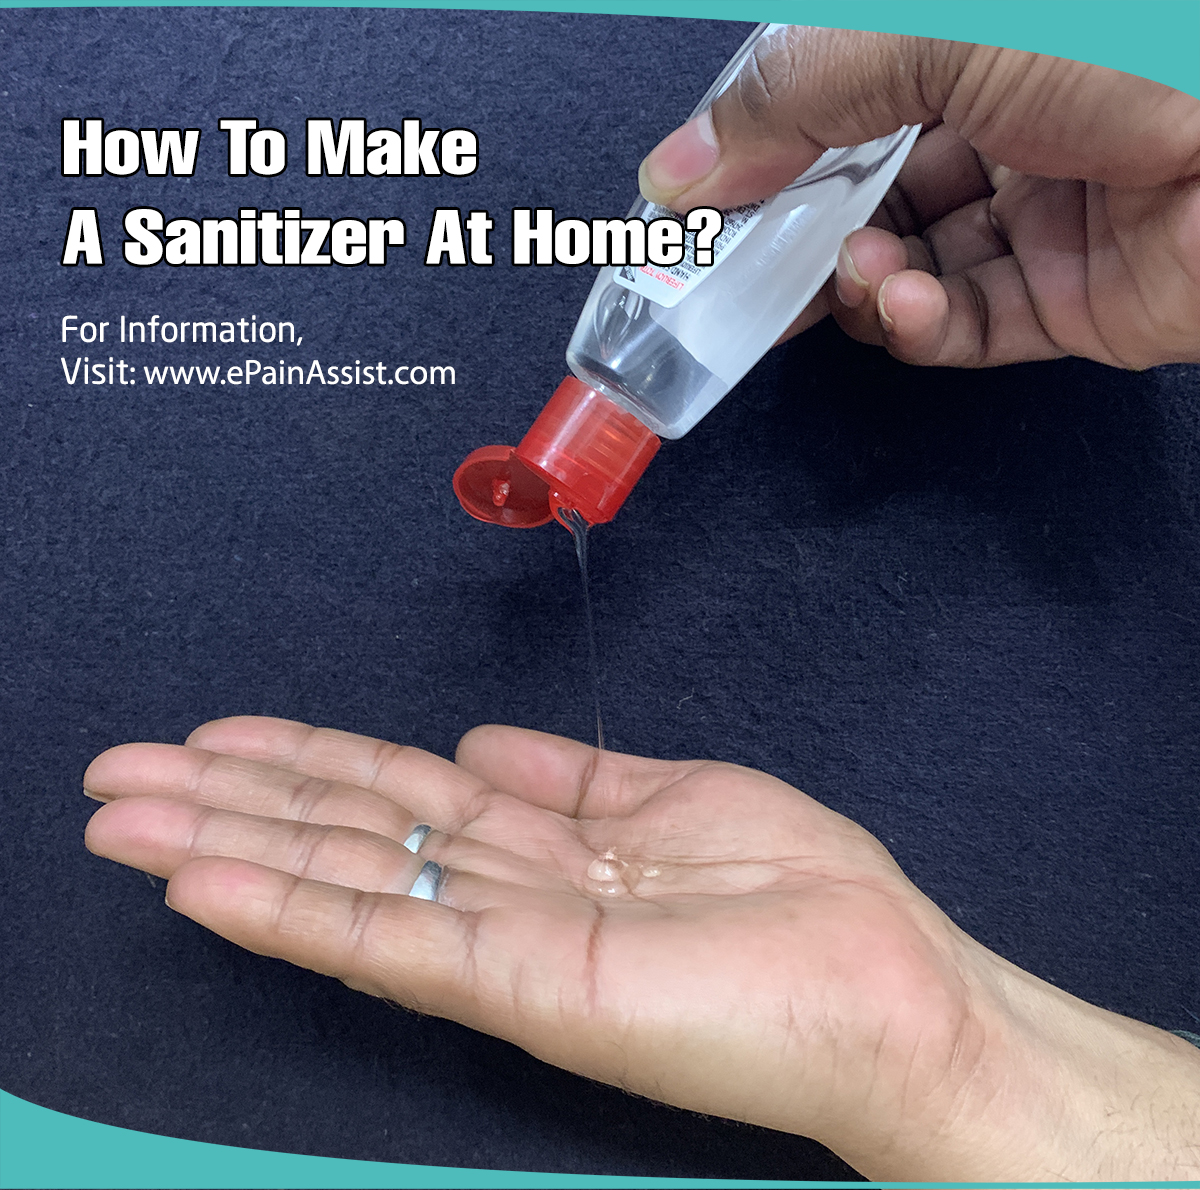 How To Make A Sanitizer At Home?